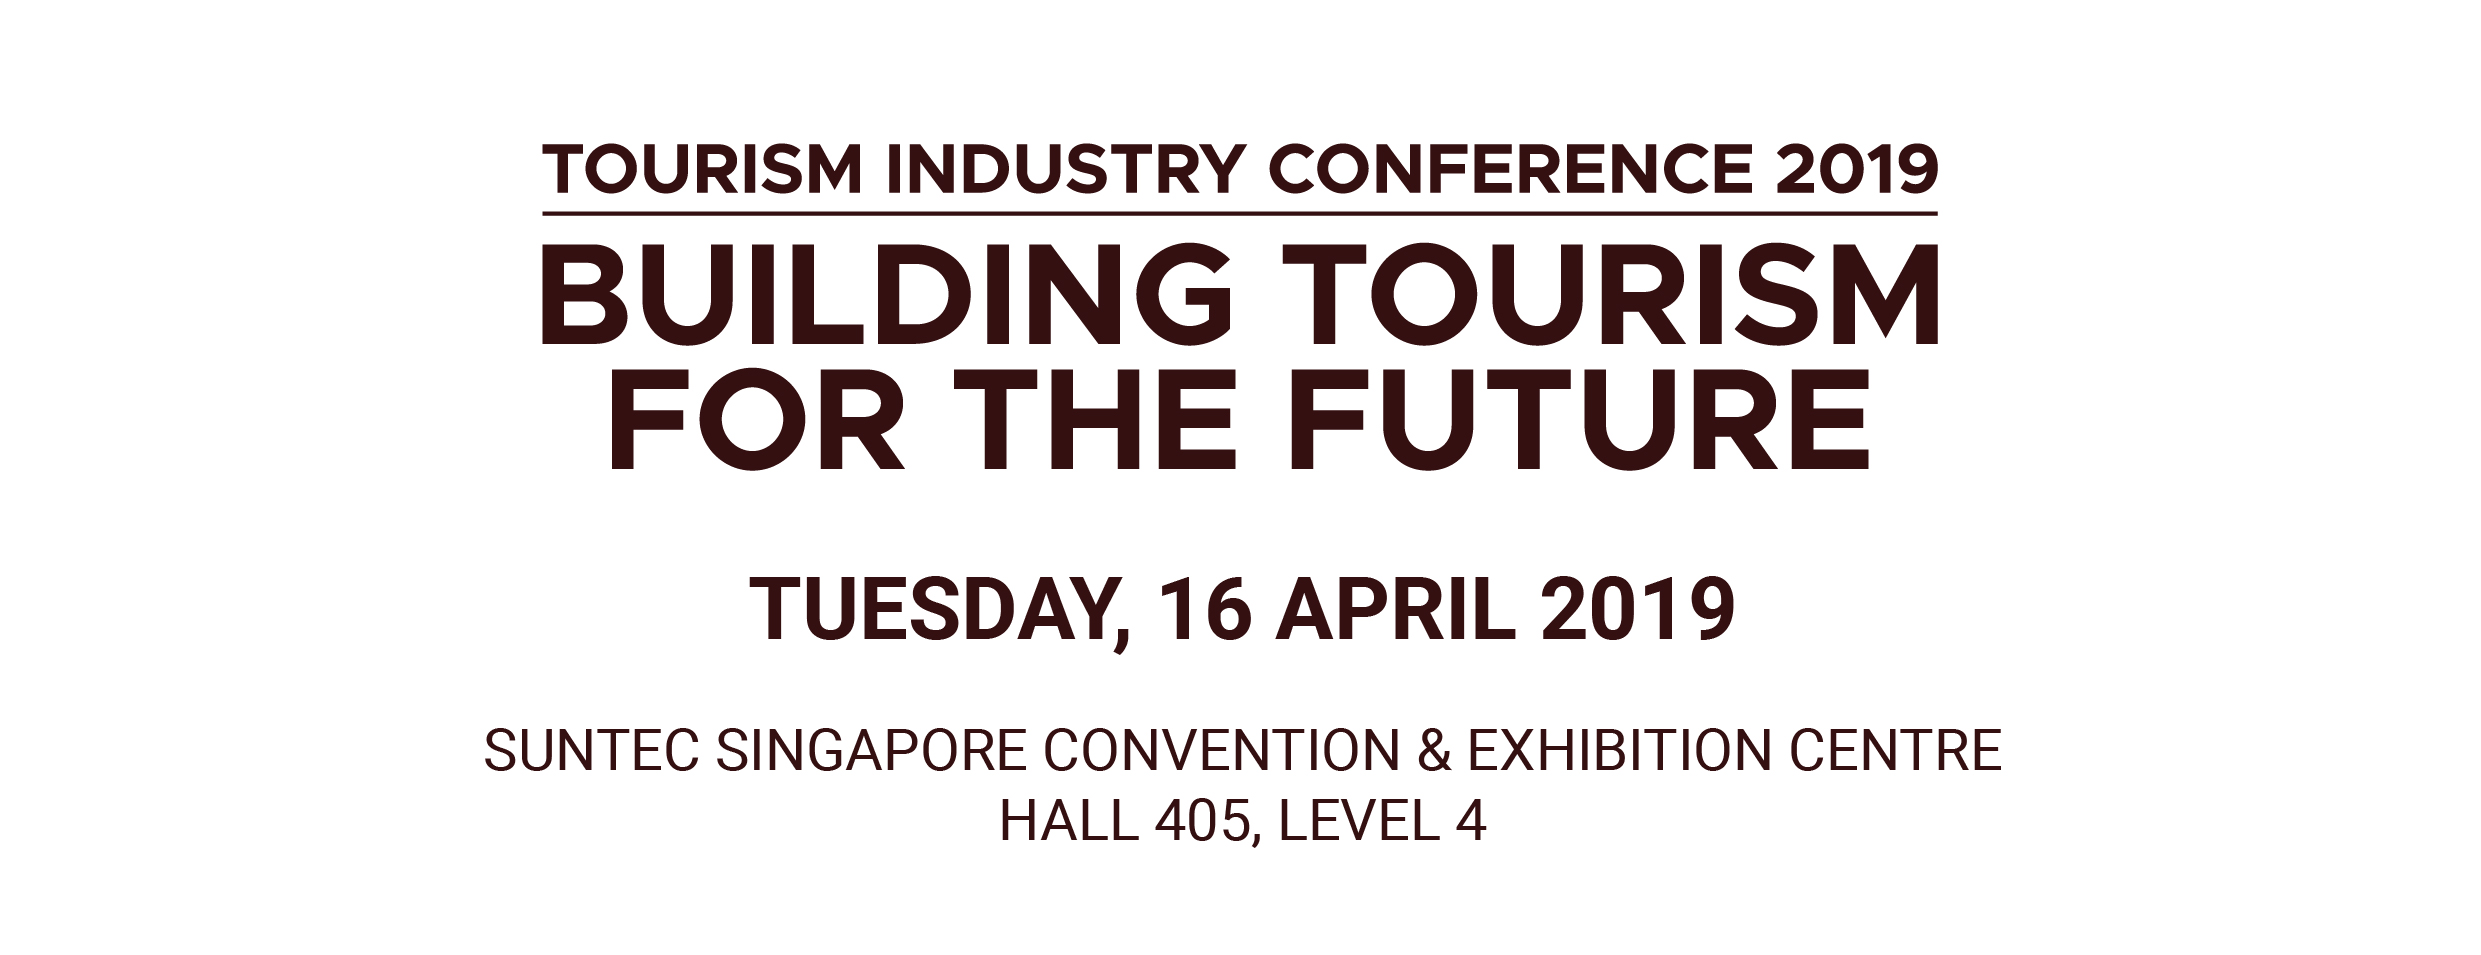 Tourism Industry Conference 2019 Registration, Singapore - EventNook